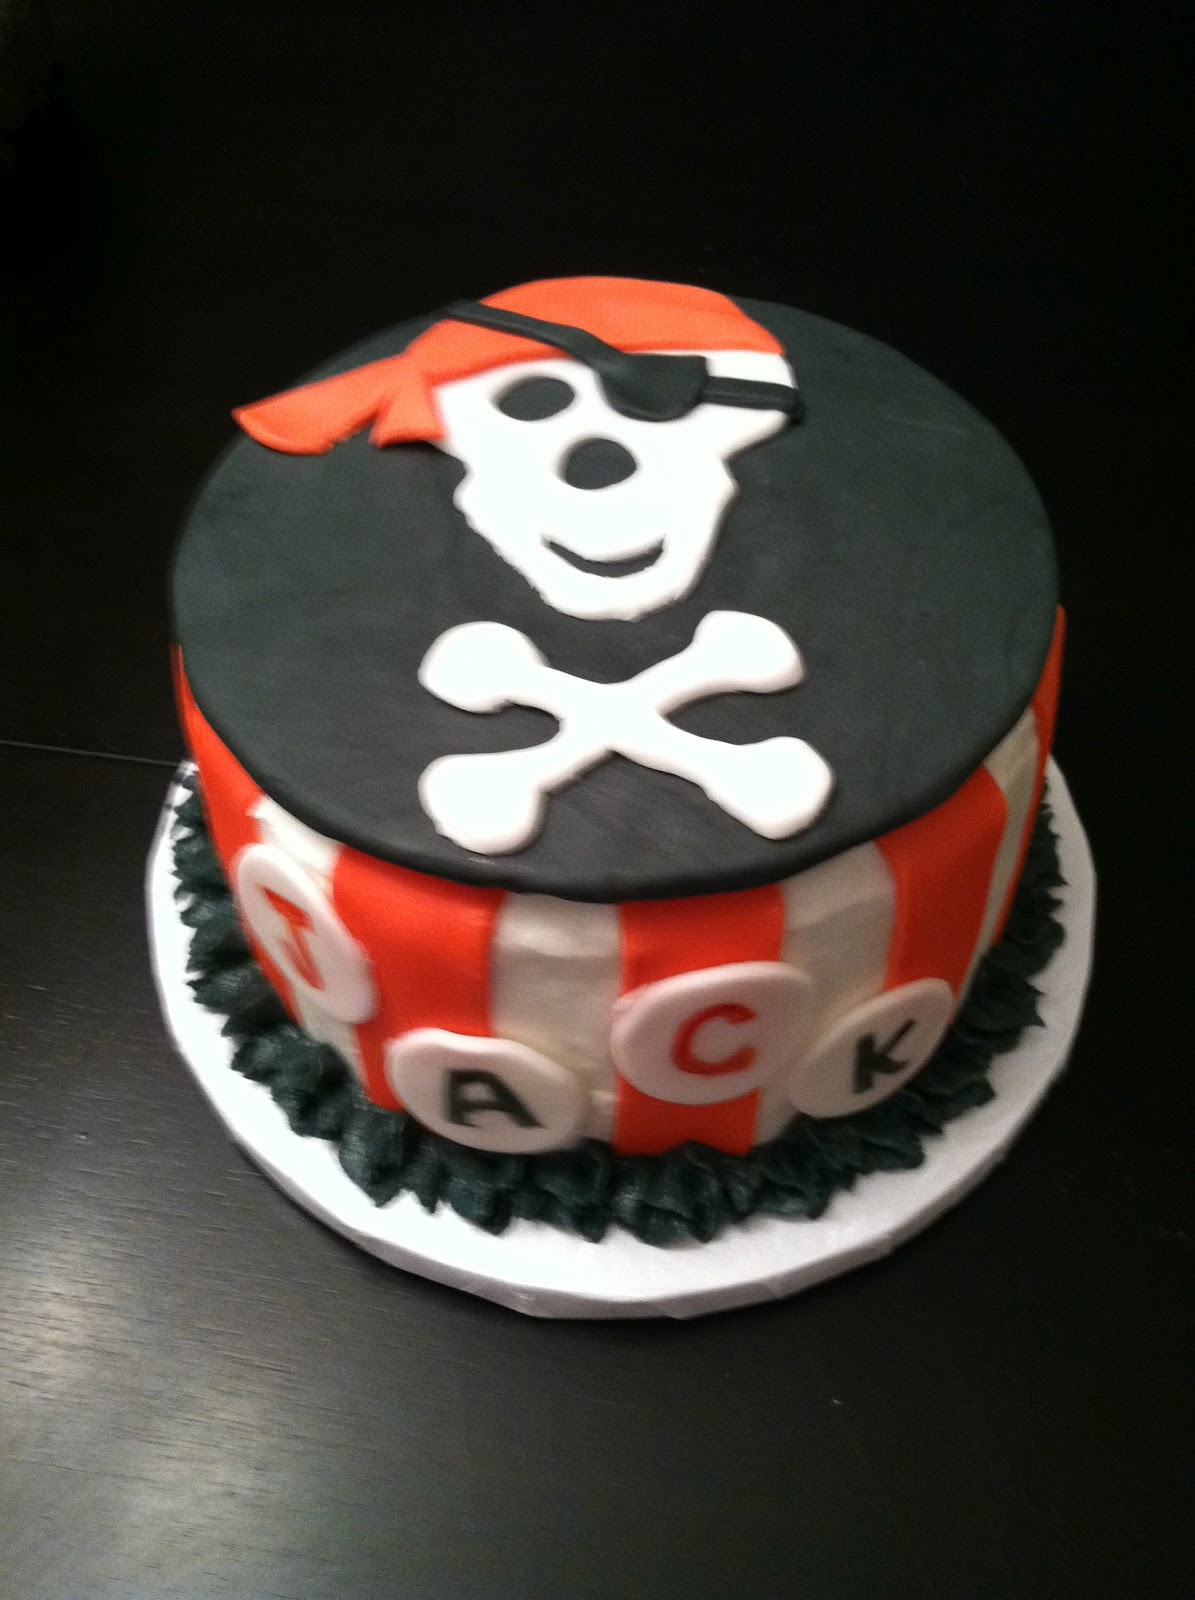 Pirate cake - photo#7